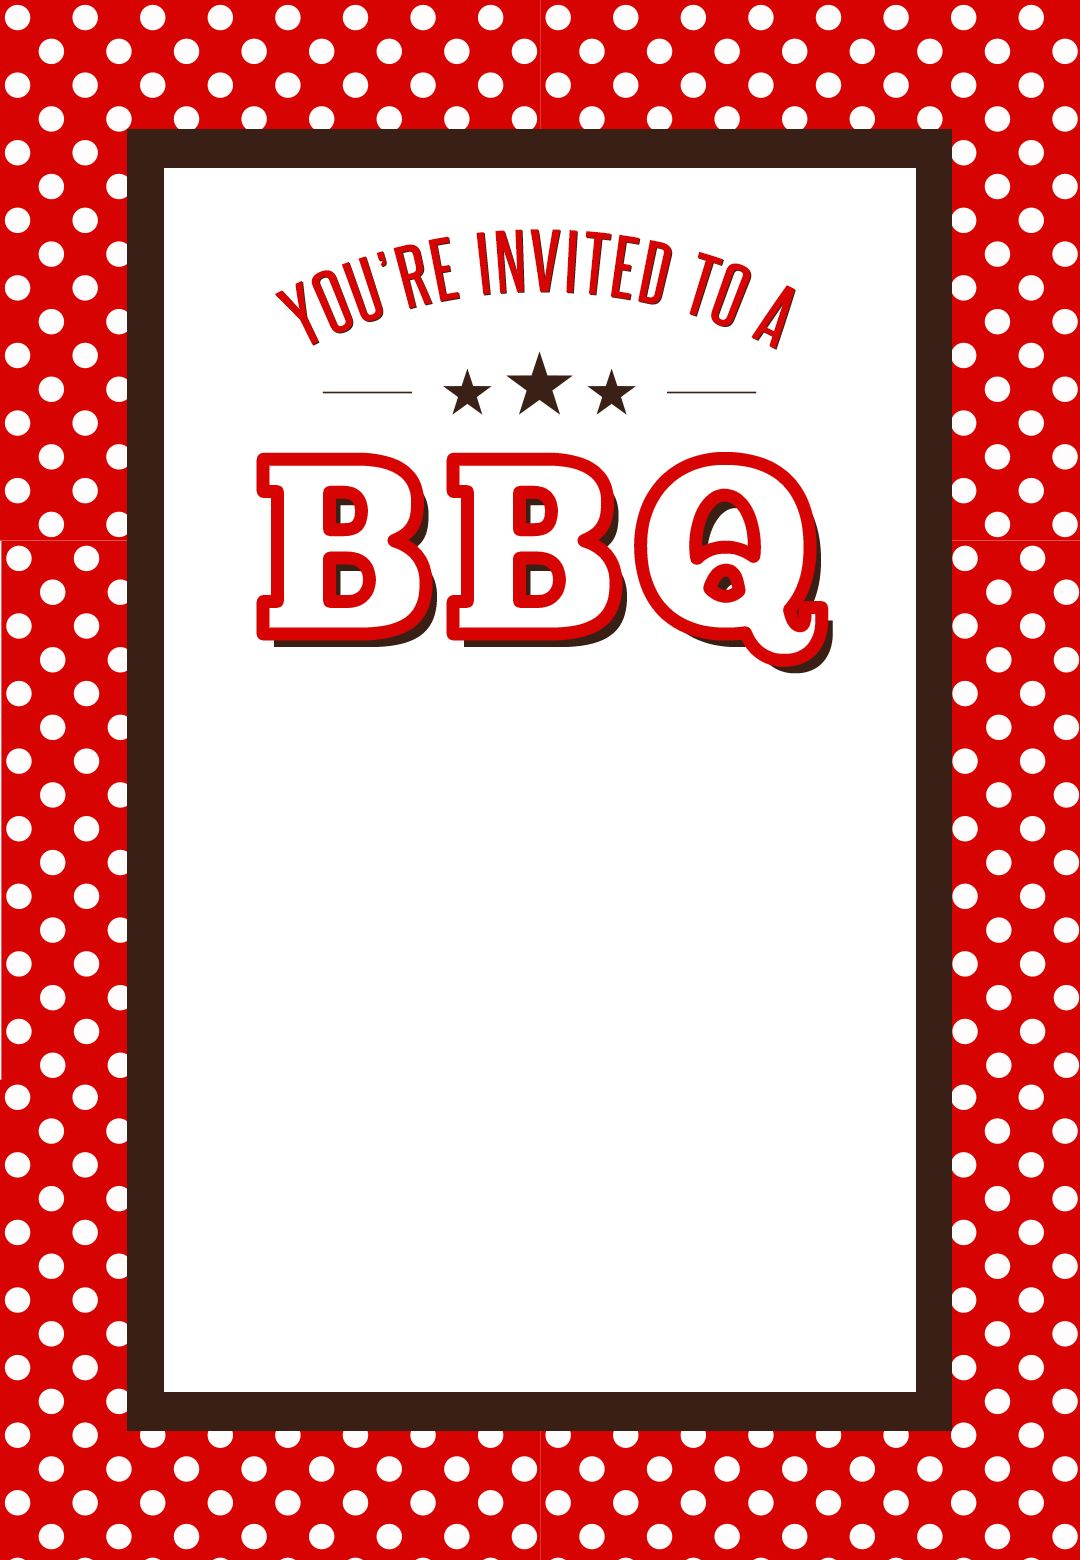 bbq party invitation free printables bbq party. Black Bedroom Furniture Sets. Home Design Ideas